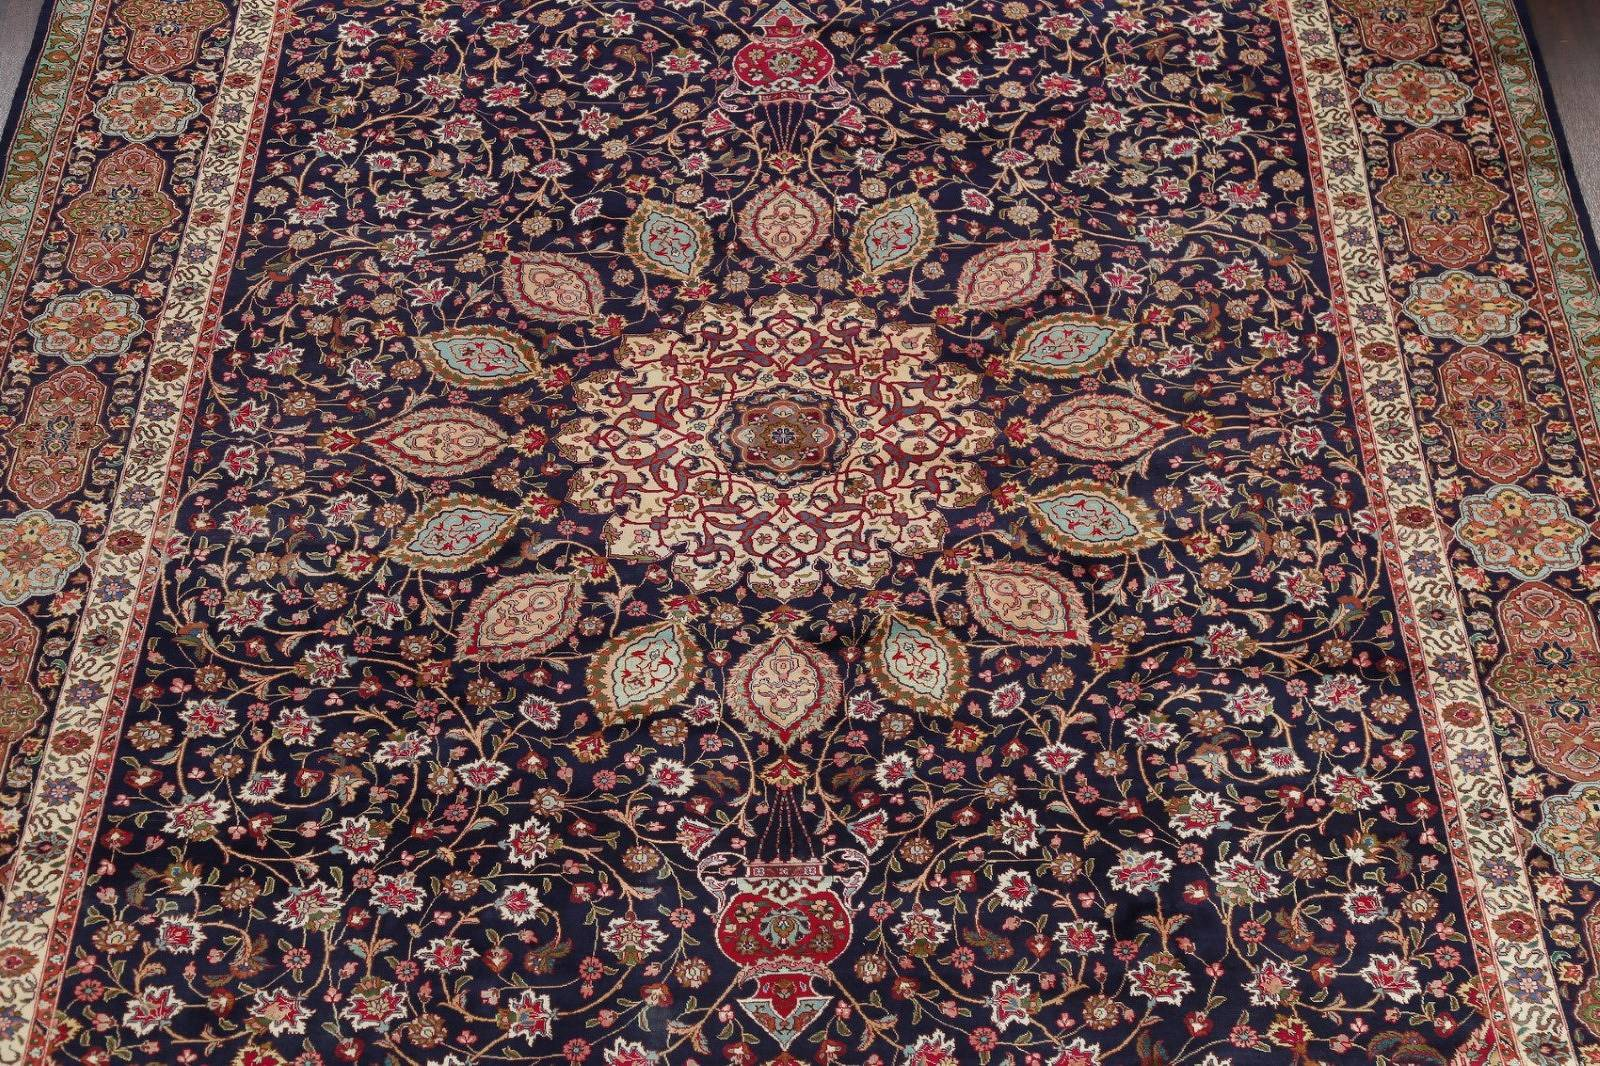 Geometric Navy Blue Tabriz Persian Hand-Knotted Area Rug Wool 10x16